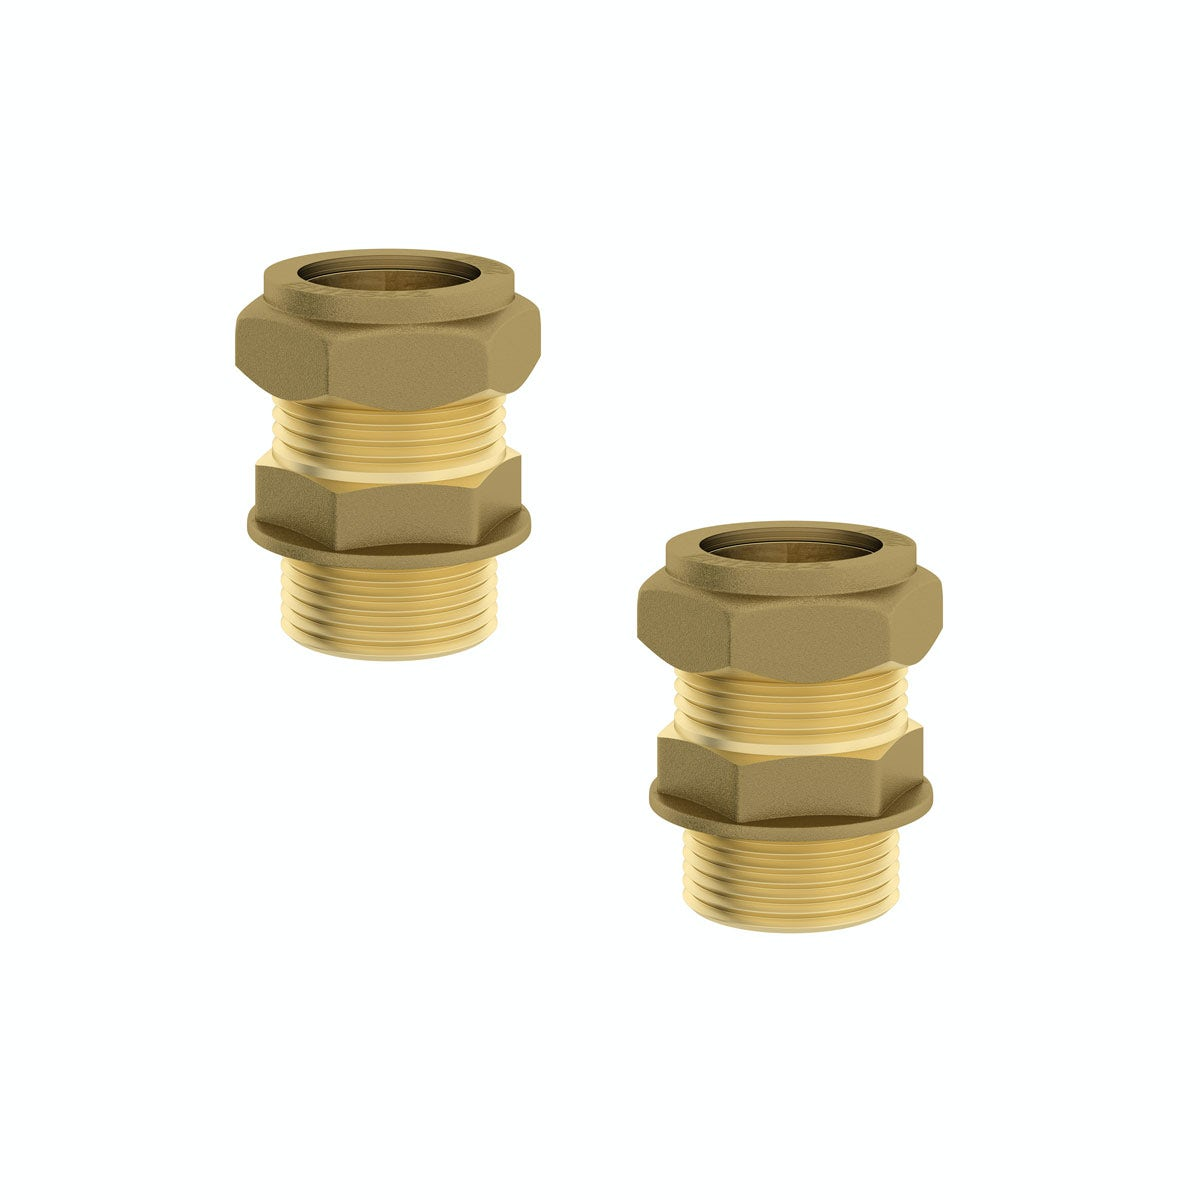 "Straight male connectors 3/4"" x 22mm (2 Pack)"